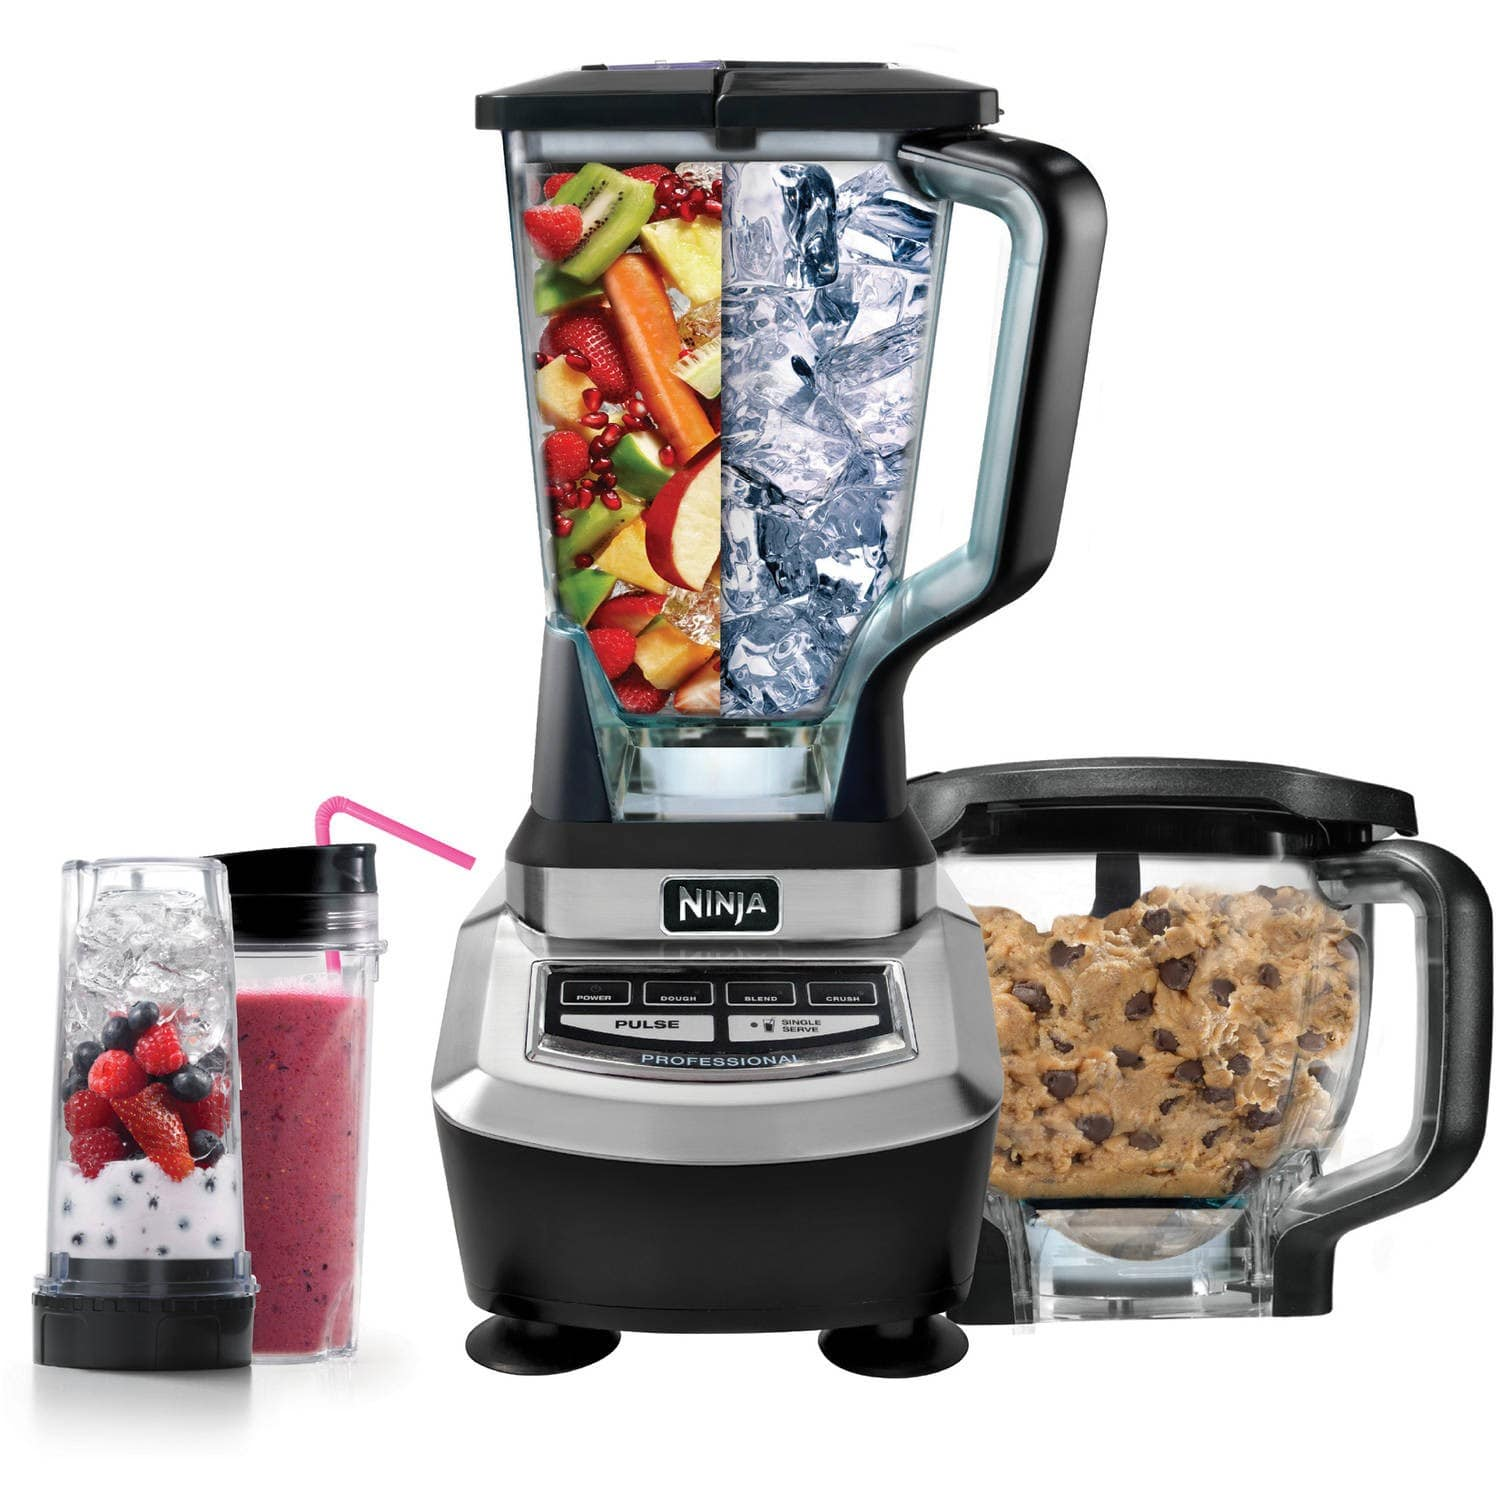 Ninja Supra Kitchen Blender System with Food Processor - $35 Walmart YMMV